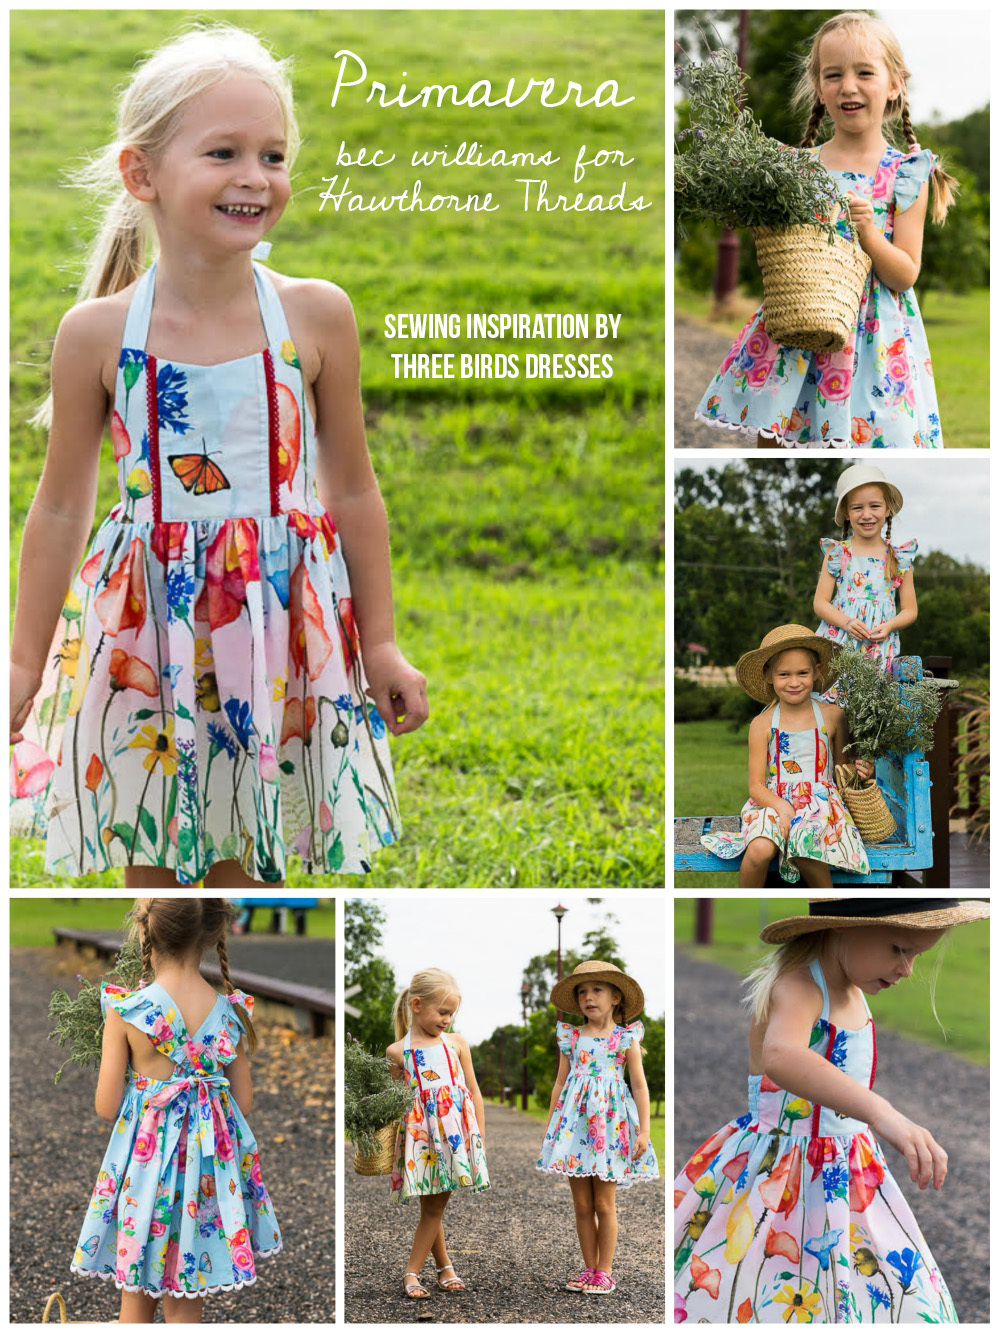 Primavera Dresses by Three Birds Dresse